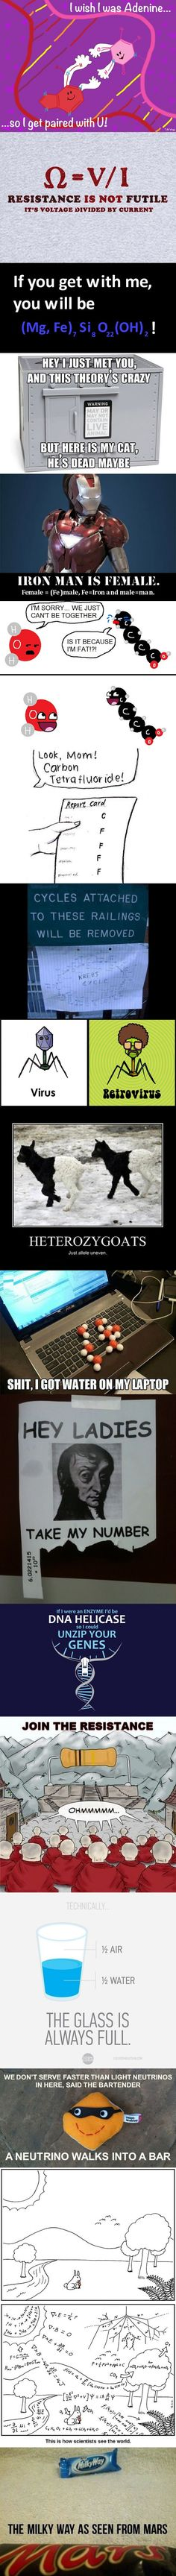 Science Jokes. I seriously laughed for like 10 minutes